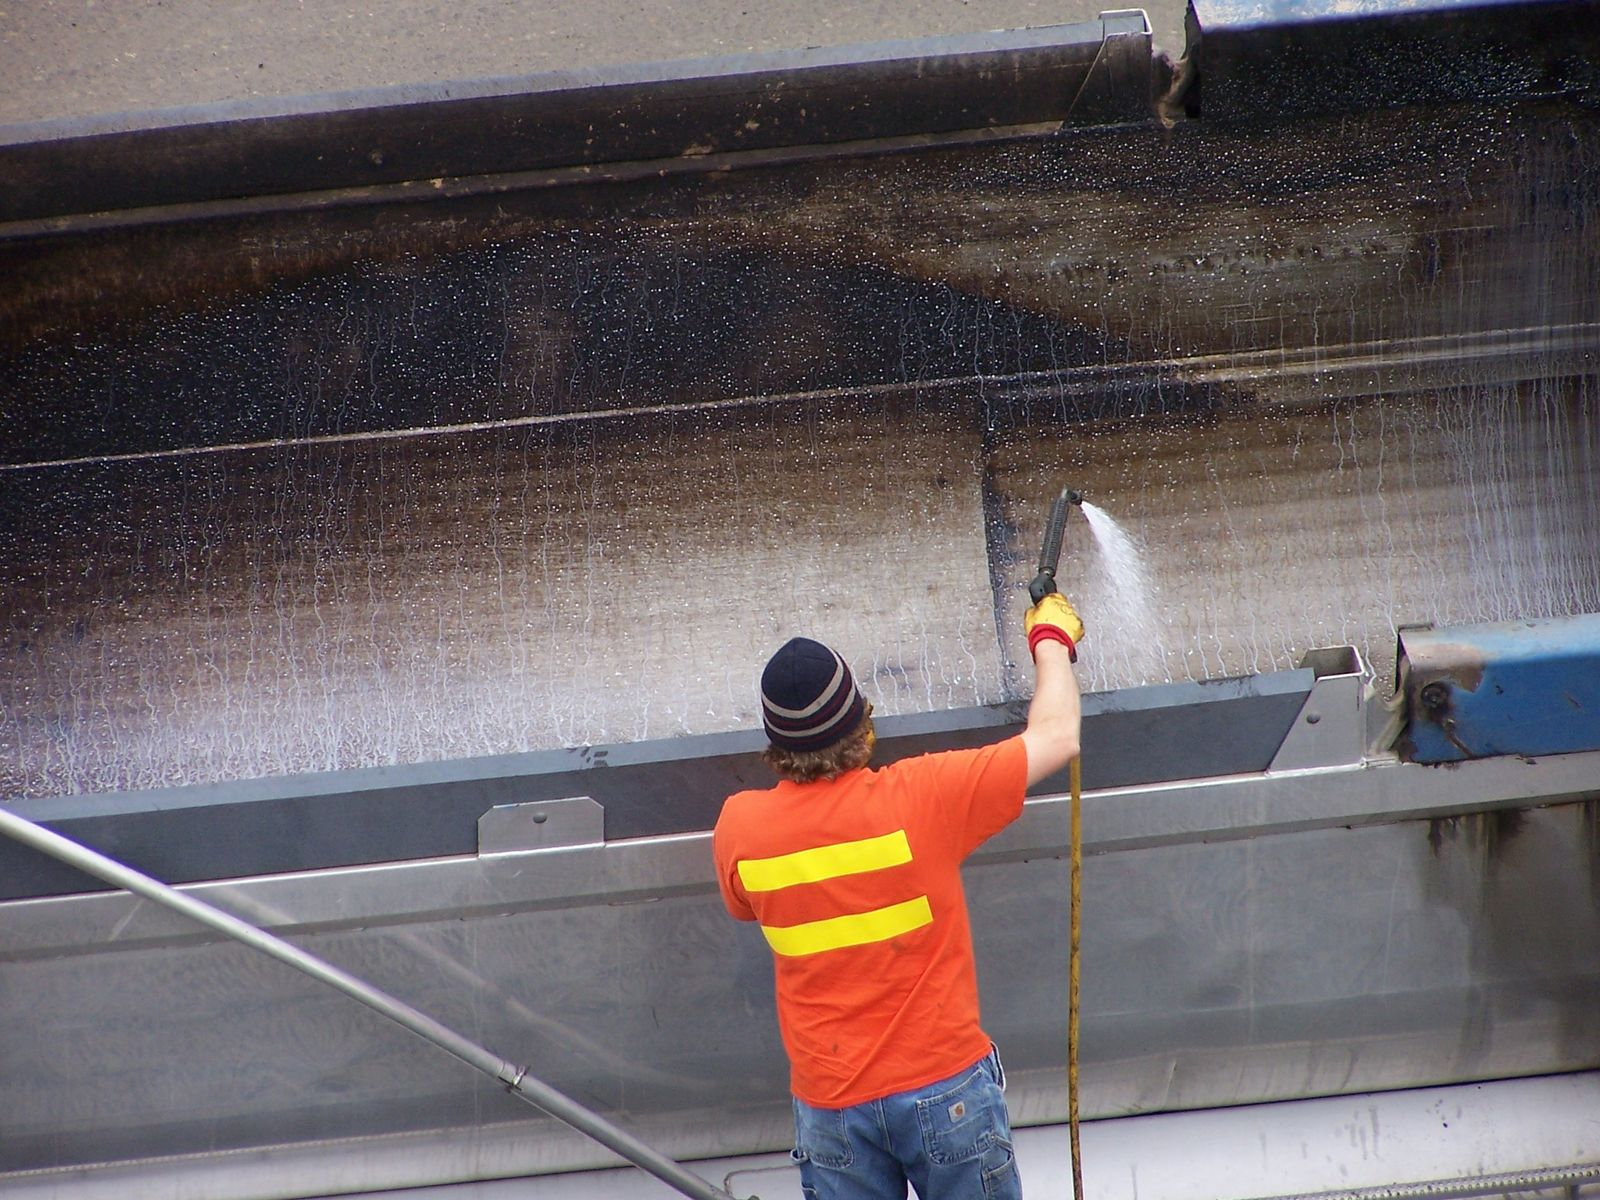 A worker applying a release agent to the bed of a truck before it is loaded with asphalt mix.